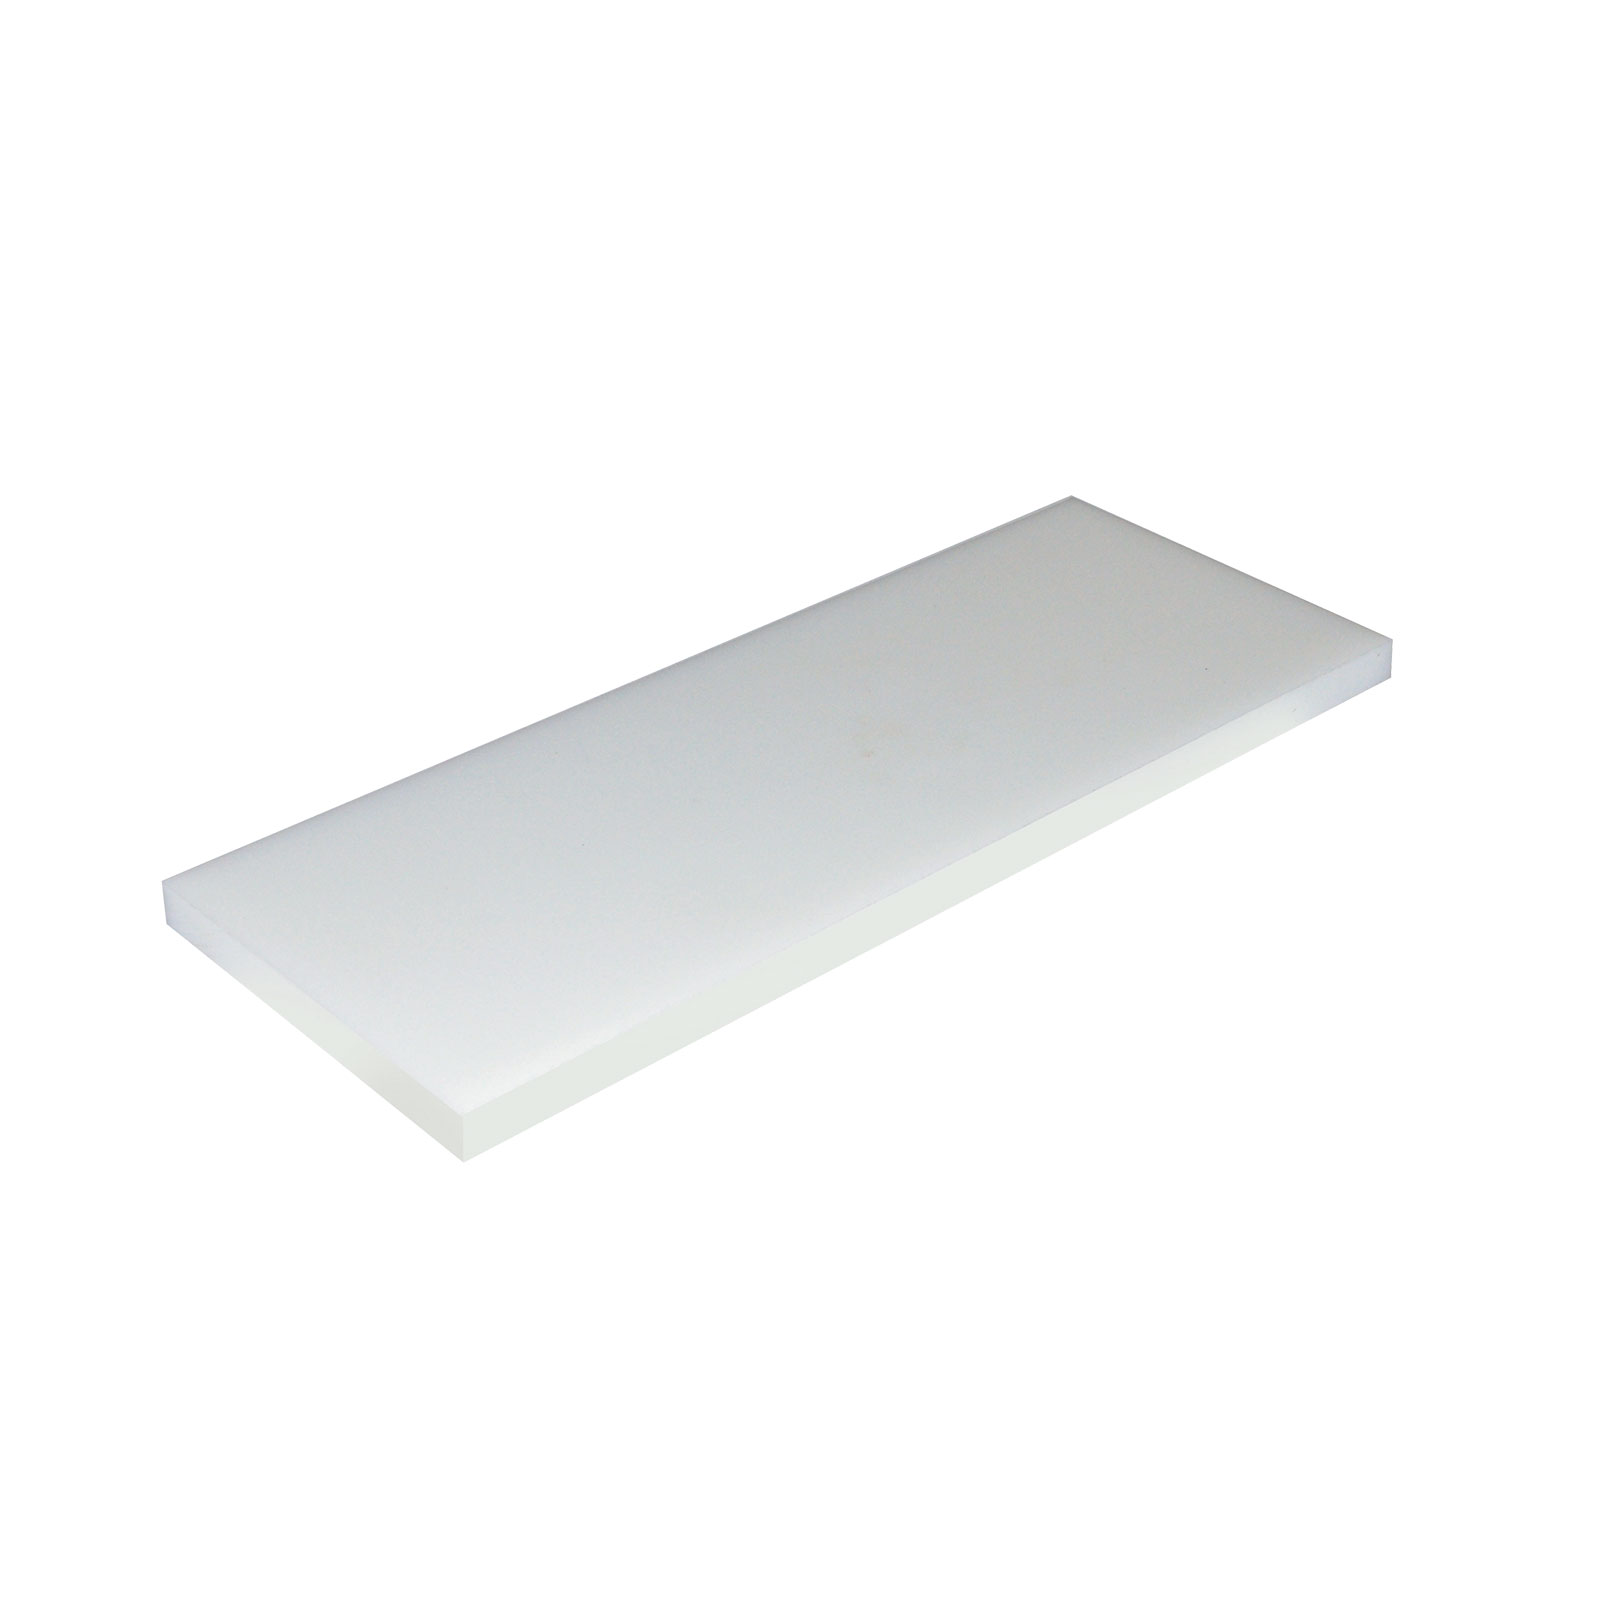 BK Resources HDPE-N-1/2-55121 cutting board, plastic